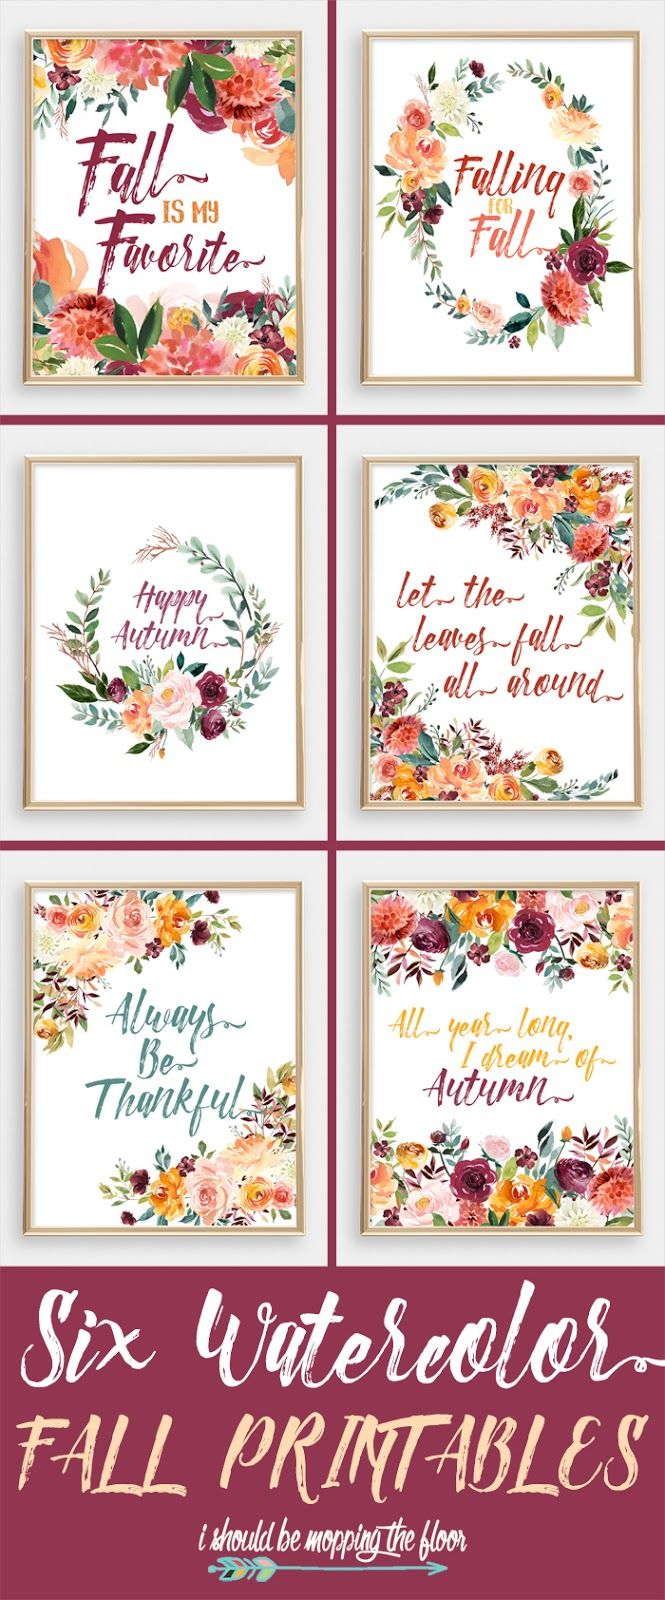 Six Watercolor Fall Printables | These gorgeous watercolor printables are layered in fall florals and foliage. They're breathtaking and perfect with all autumn decor.